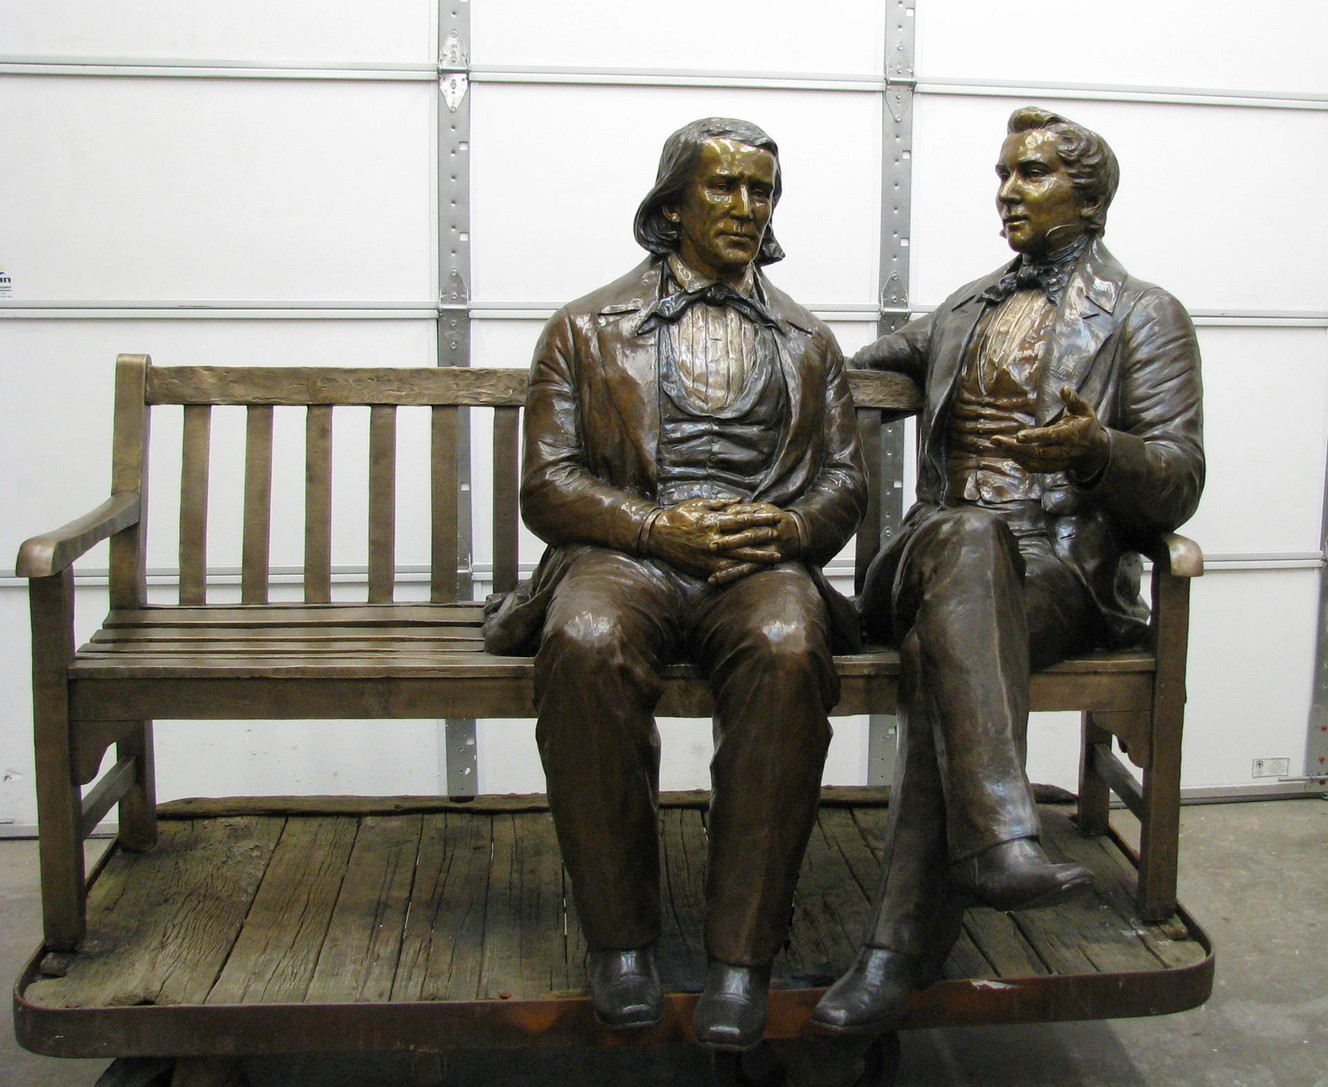 Police recover stolen 800-pound statue of Joseph Smith, Brigham Young